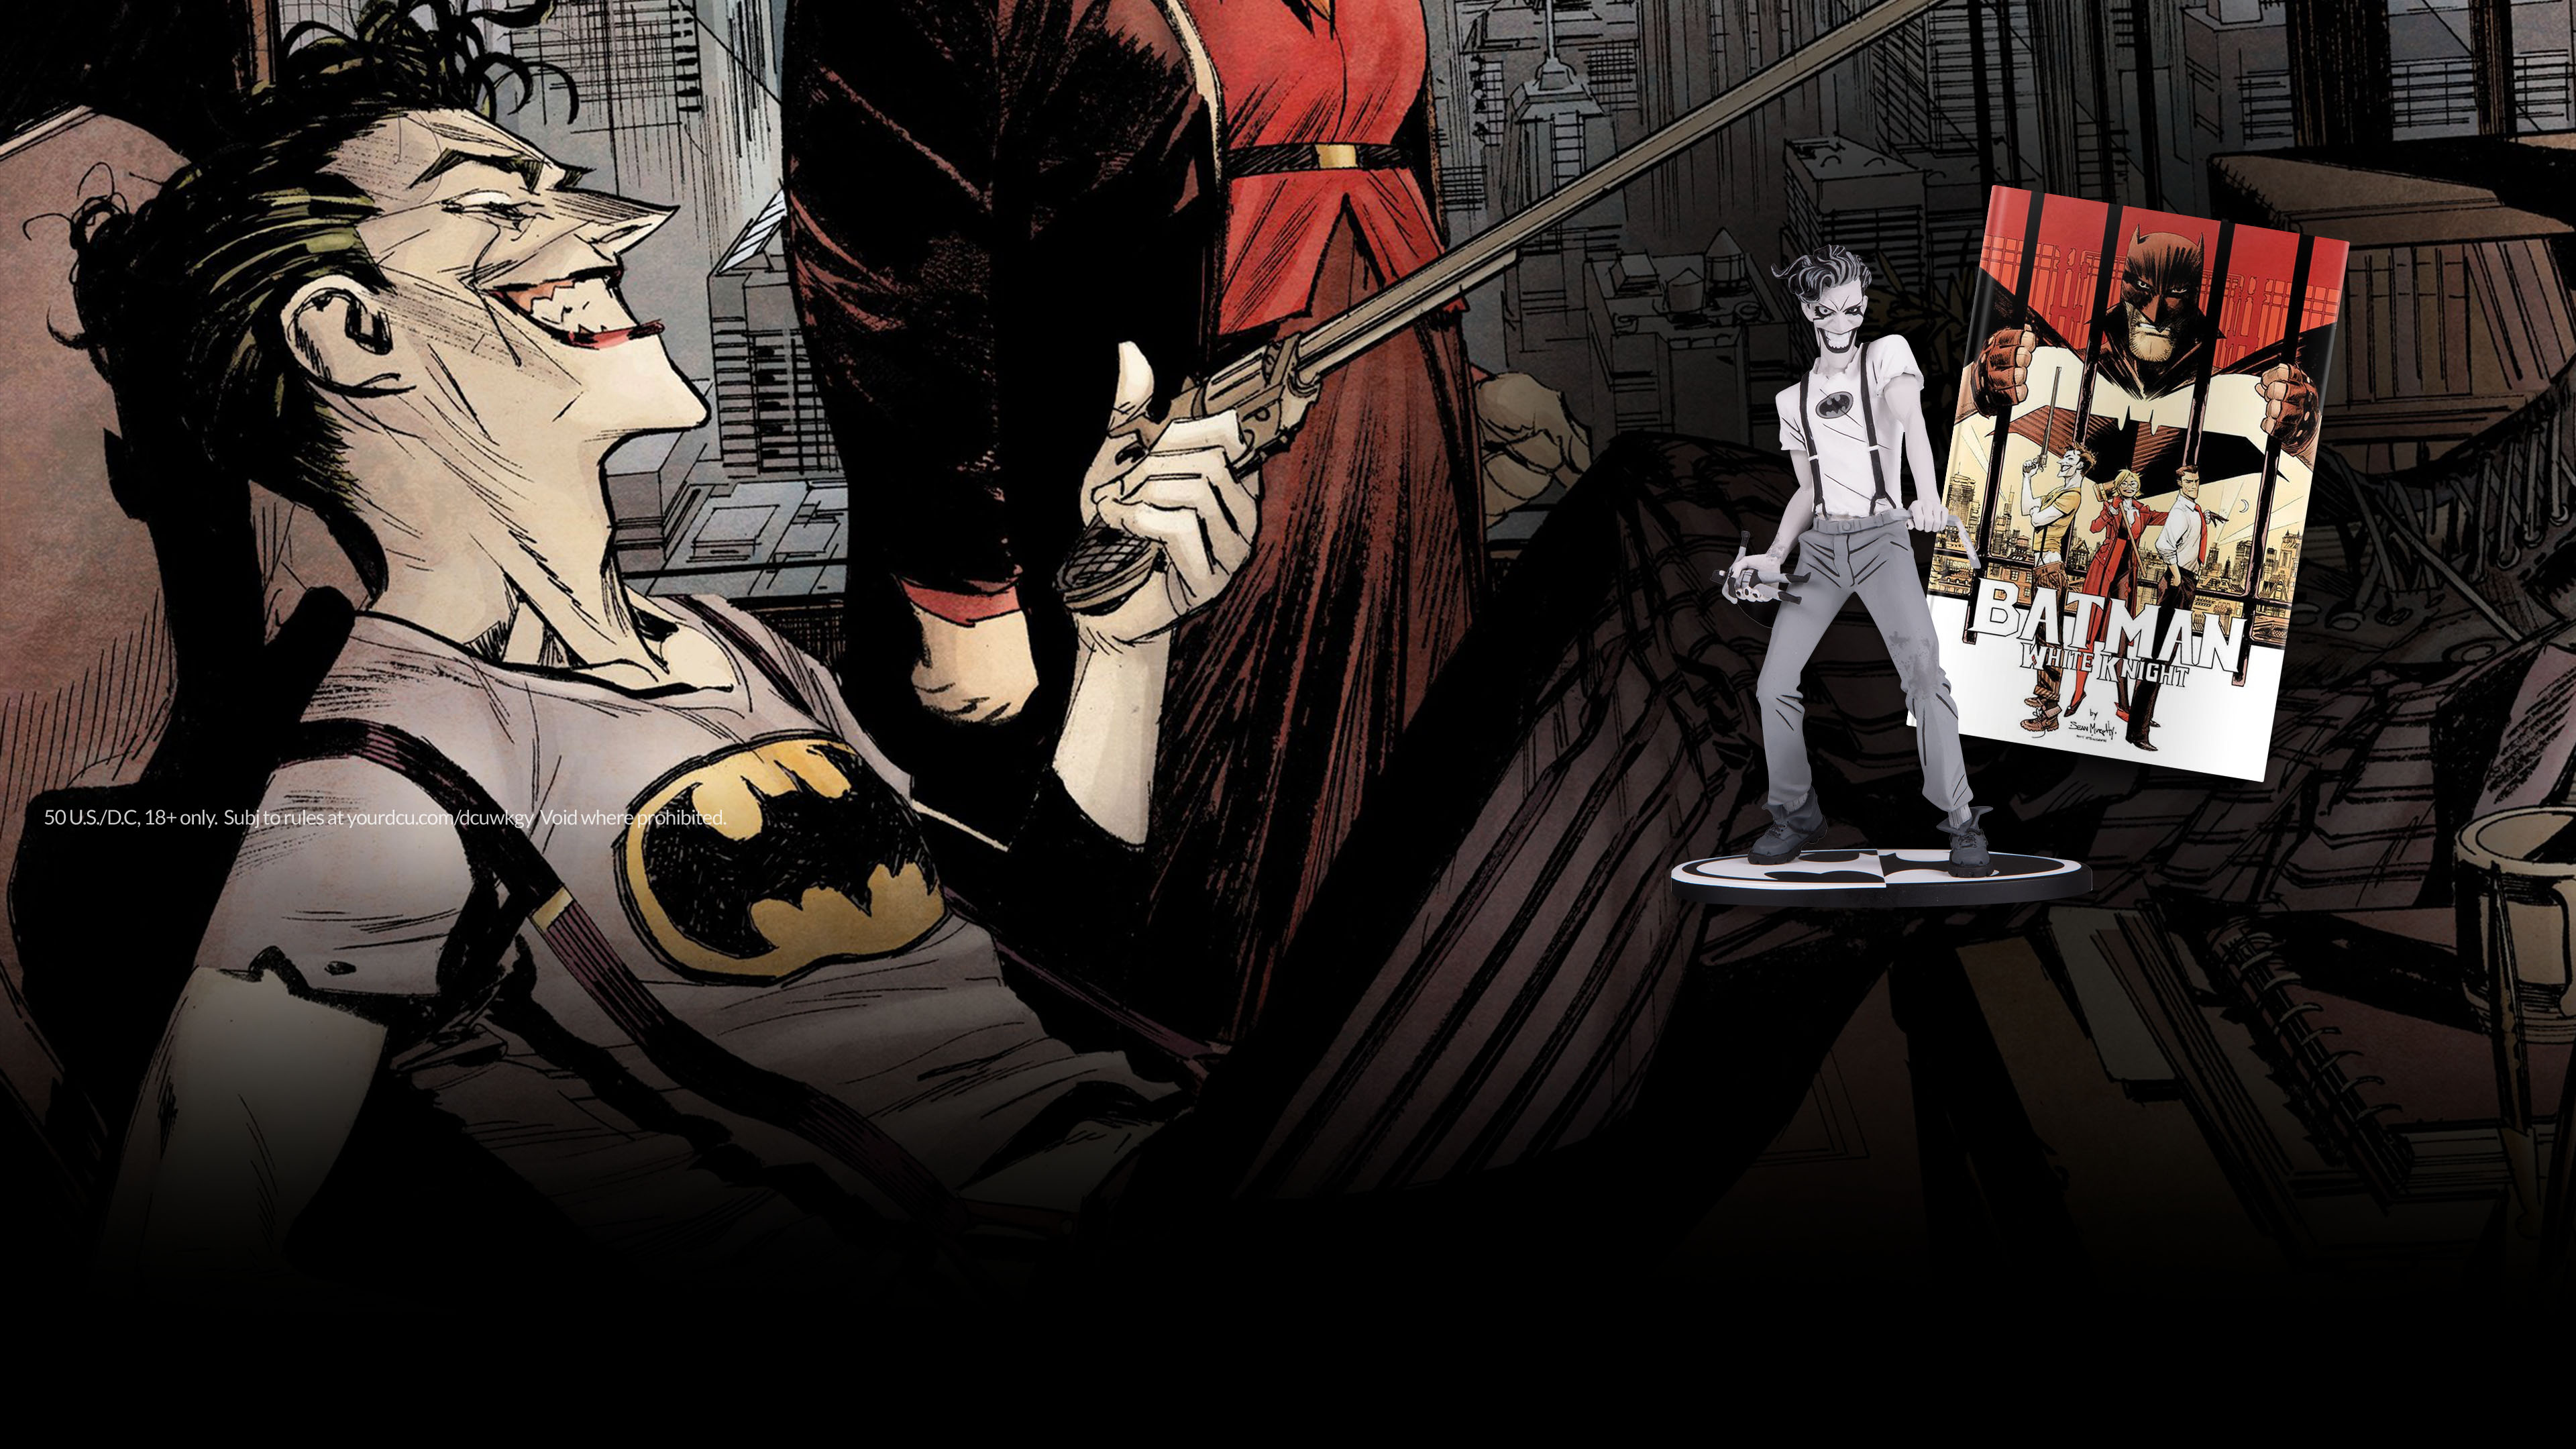 dcu-Black_and _White_Knight_Joker-ss-fnl-REVSingle Hero.jpg